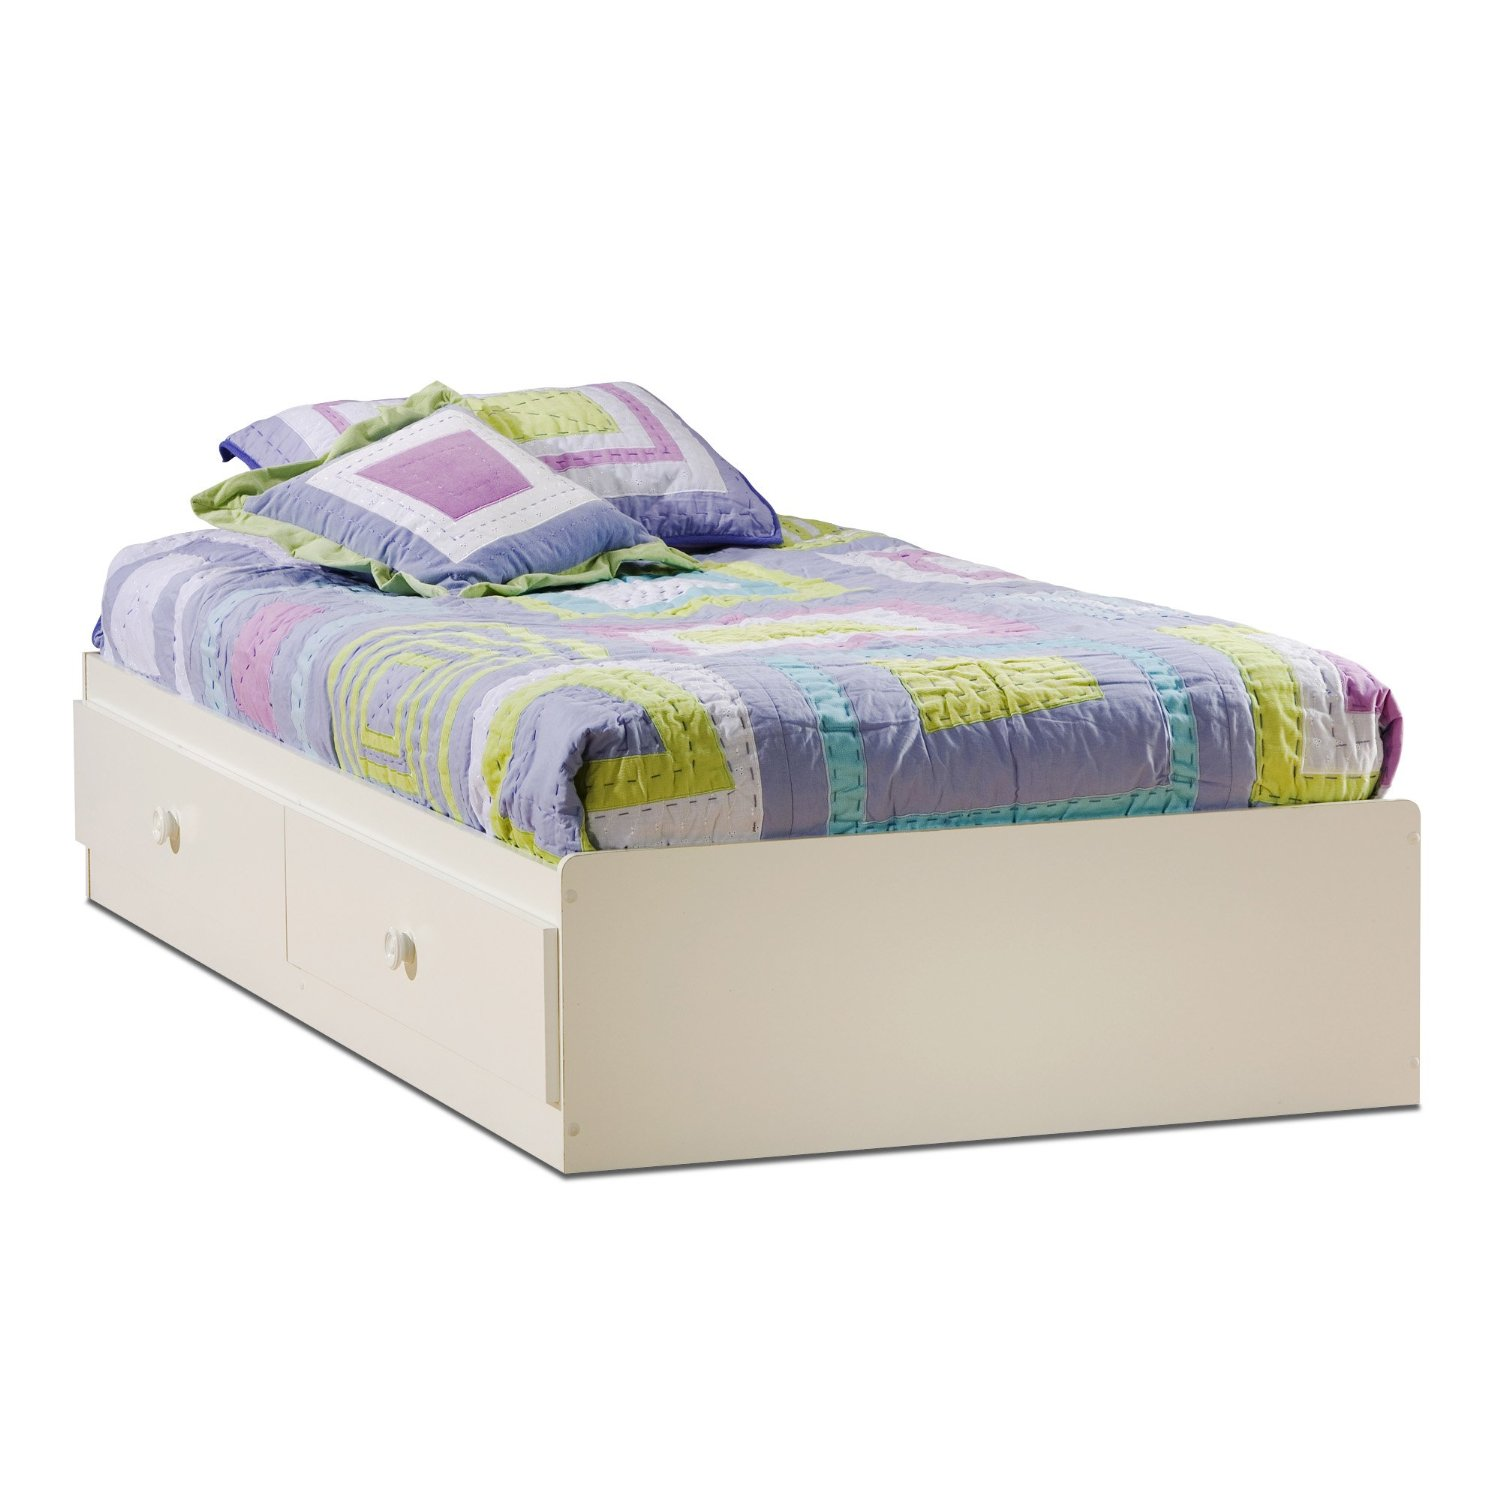 Twin Bed Frame With Storage South Shore Bed Frame For Best Experience Of Sleeping